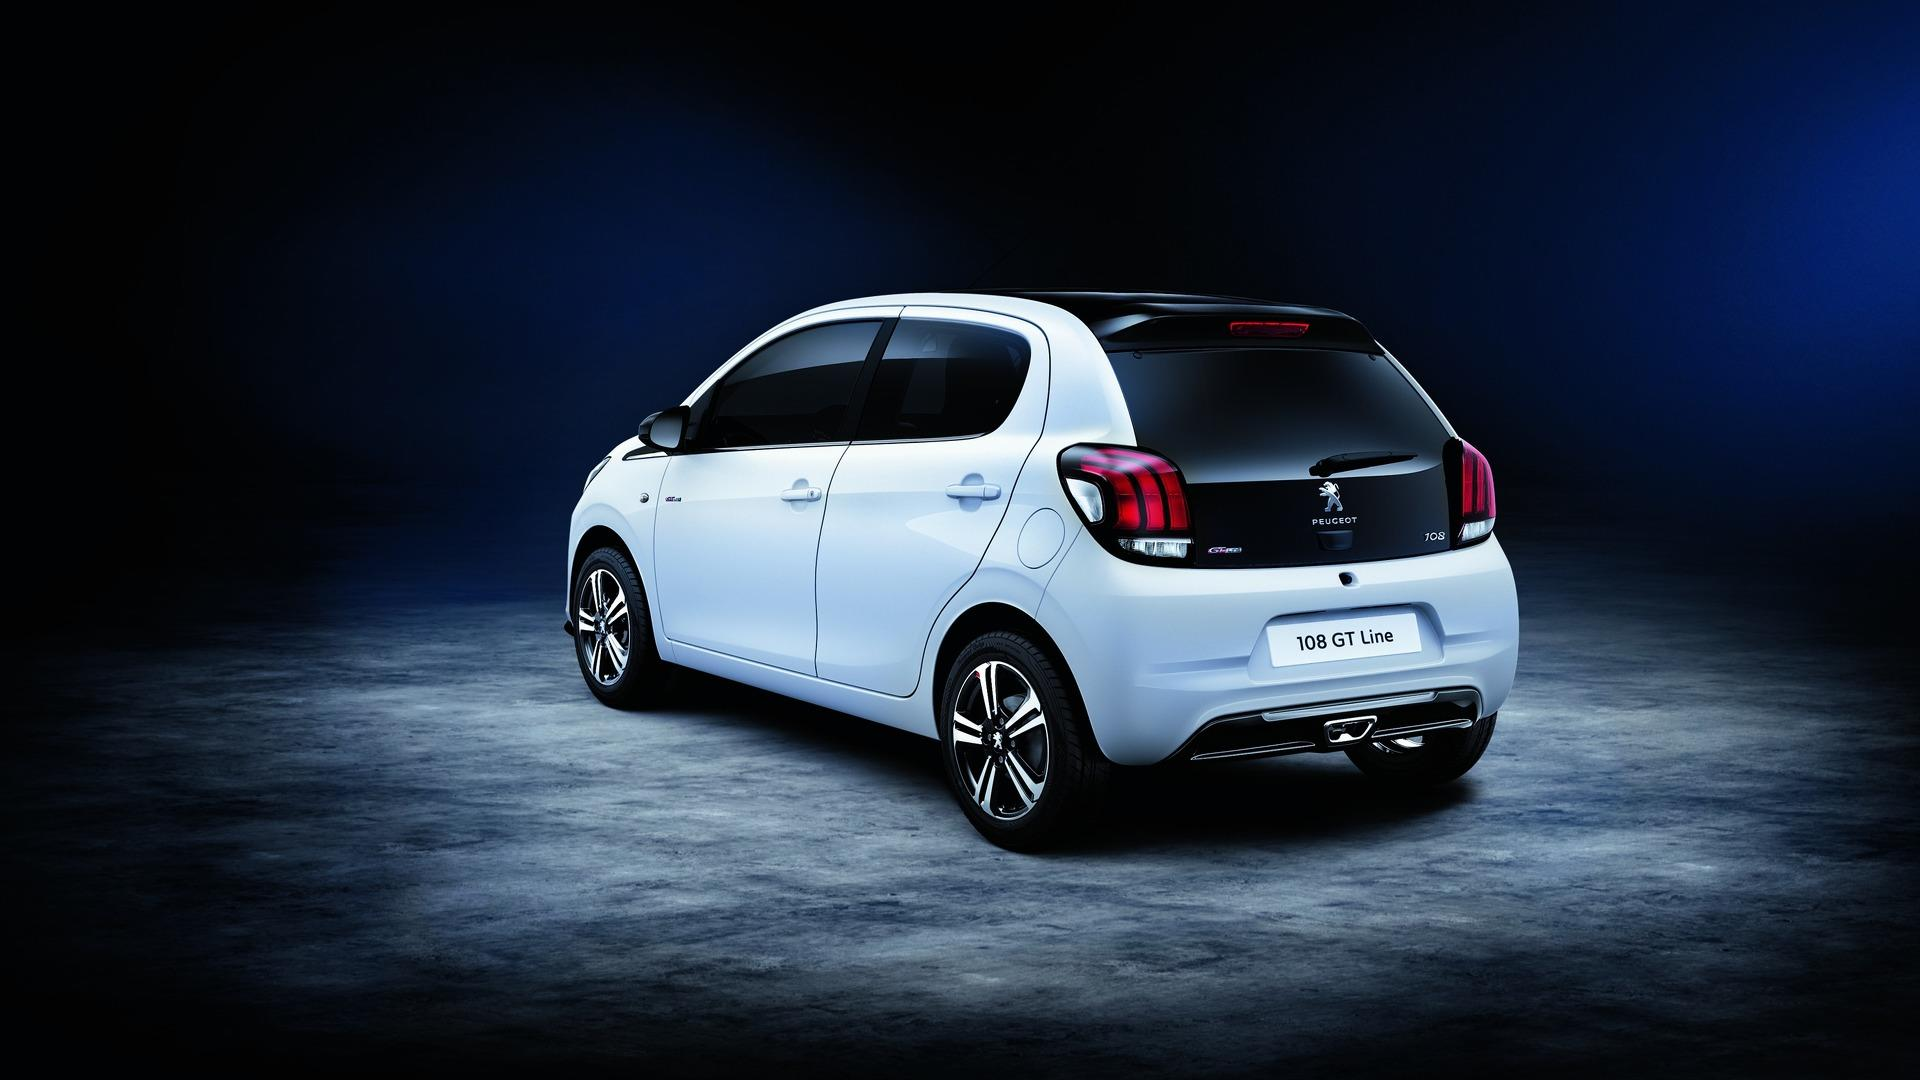 Peugeot 108 is developing in turn